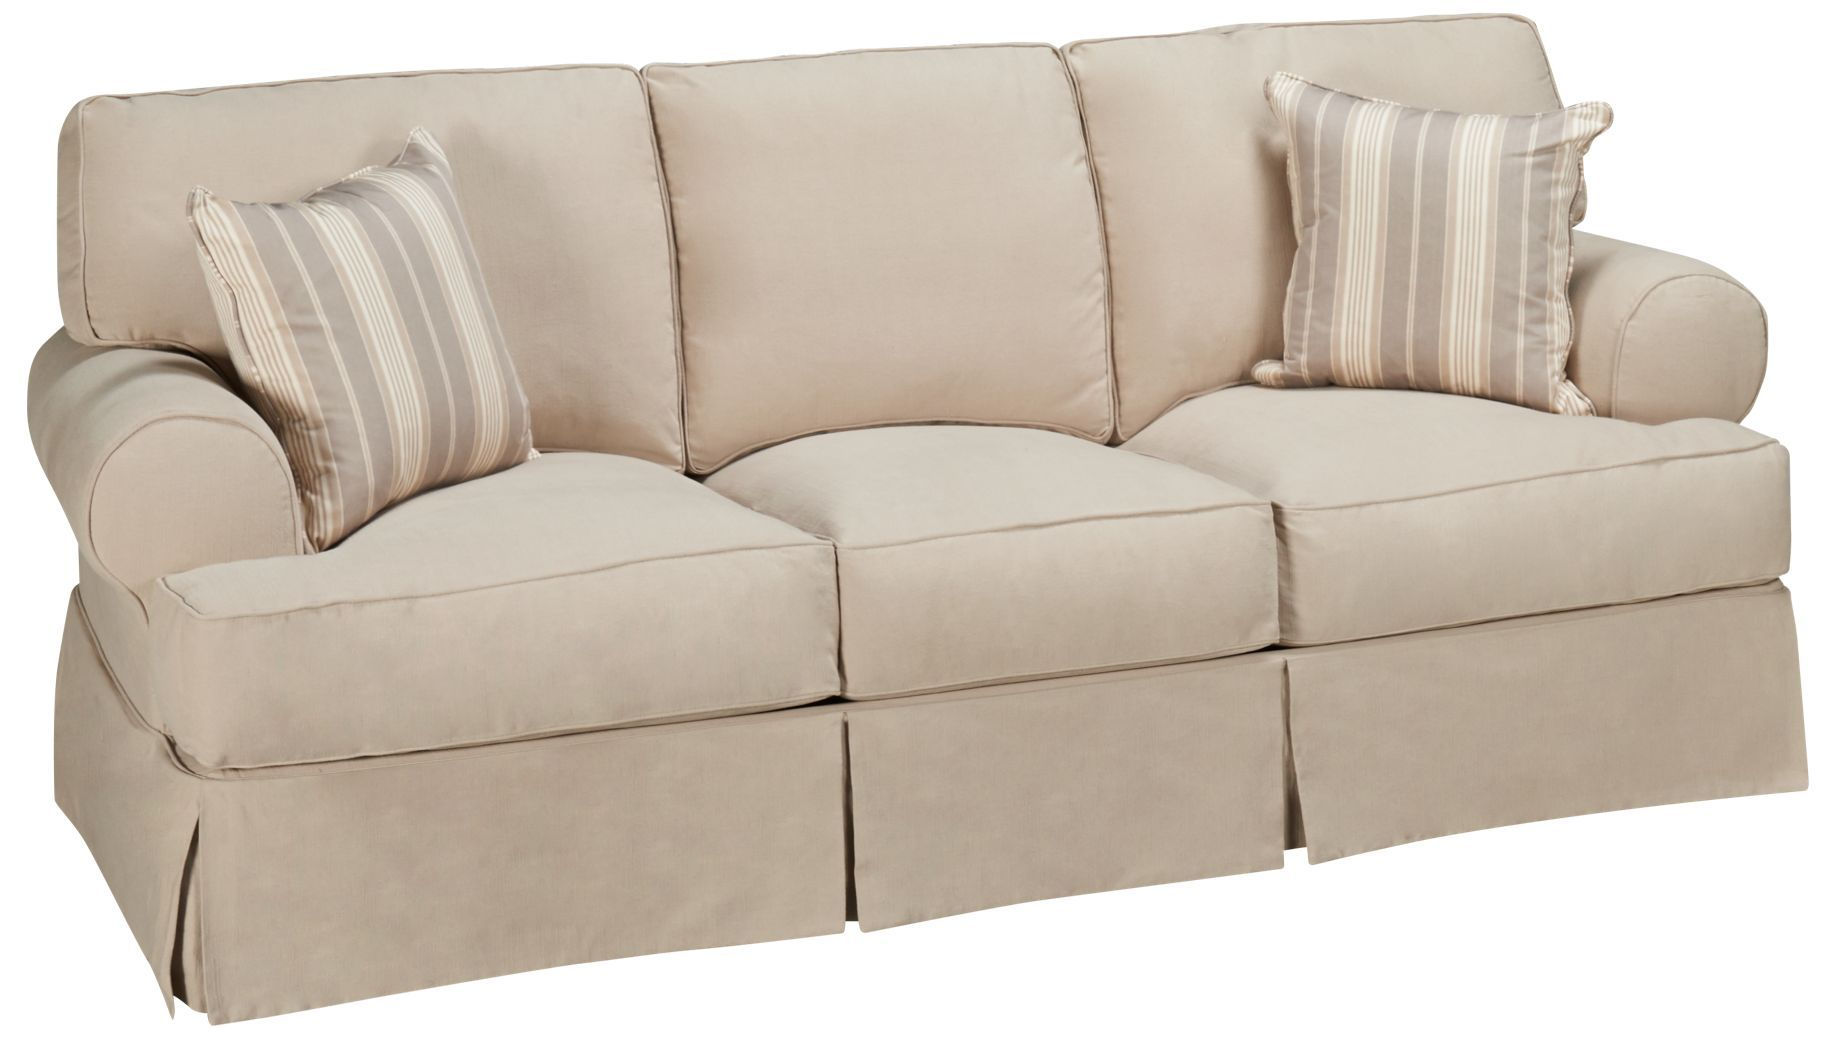 Nantucket 2 seat slipcover queen sleeper sofa rowe furniture rowe - Synergy Montague Montague Sofa With Slipcover Jordan S Furniture For The Home Pinterest Cats Jordans And Home